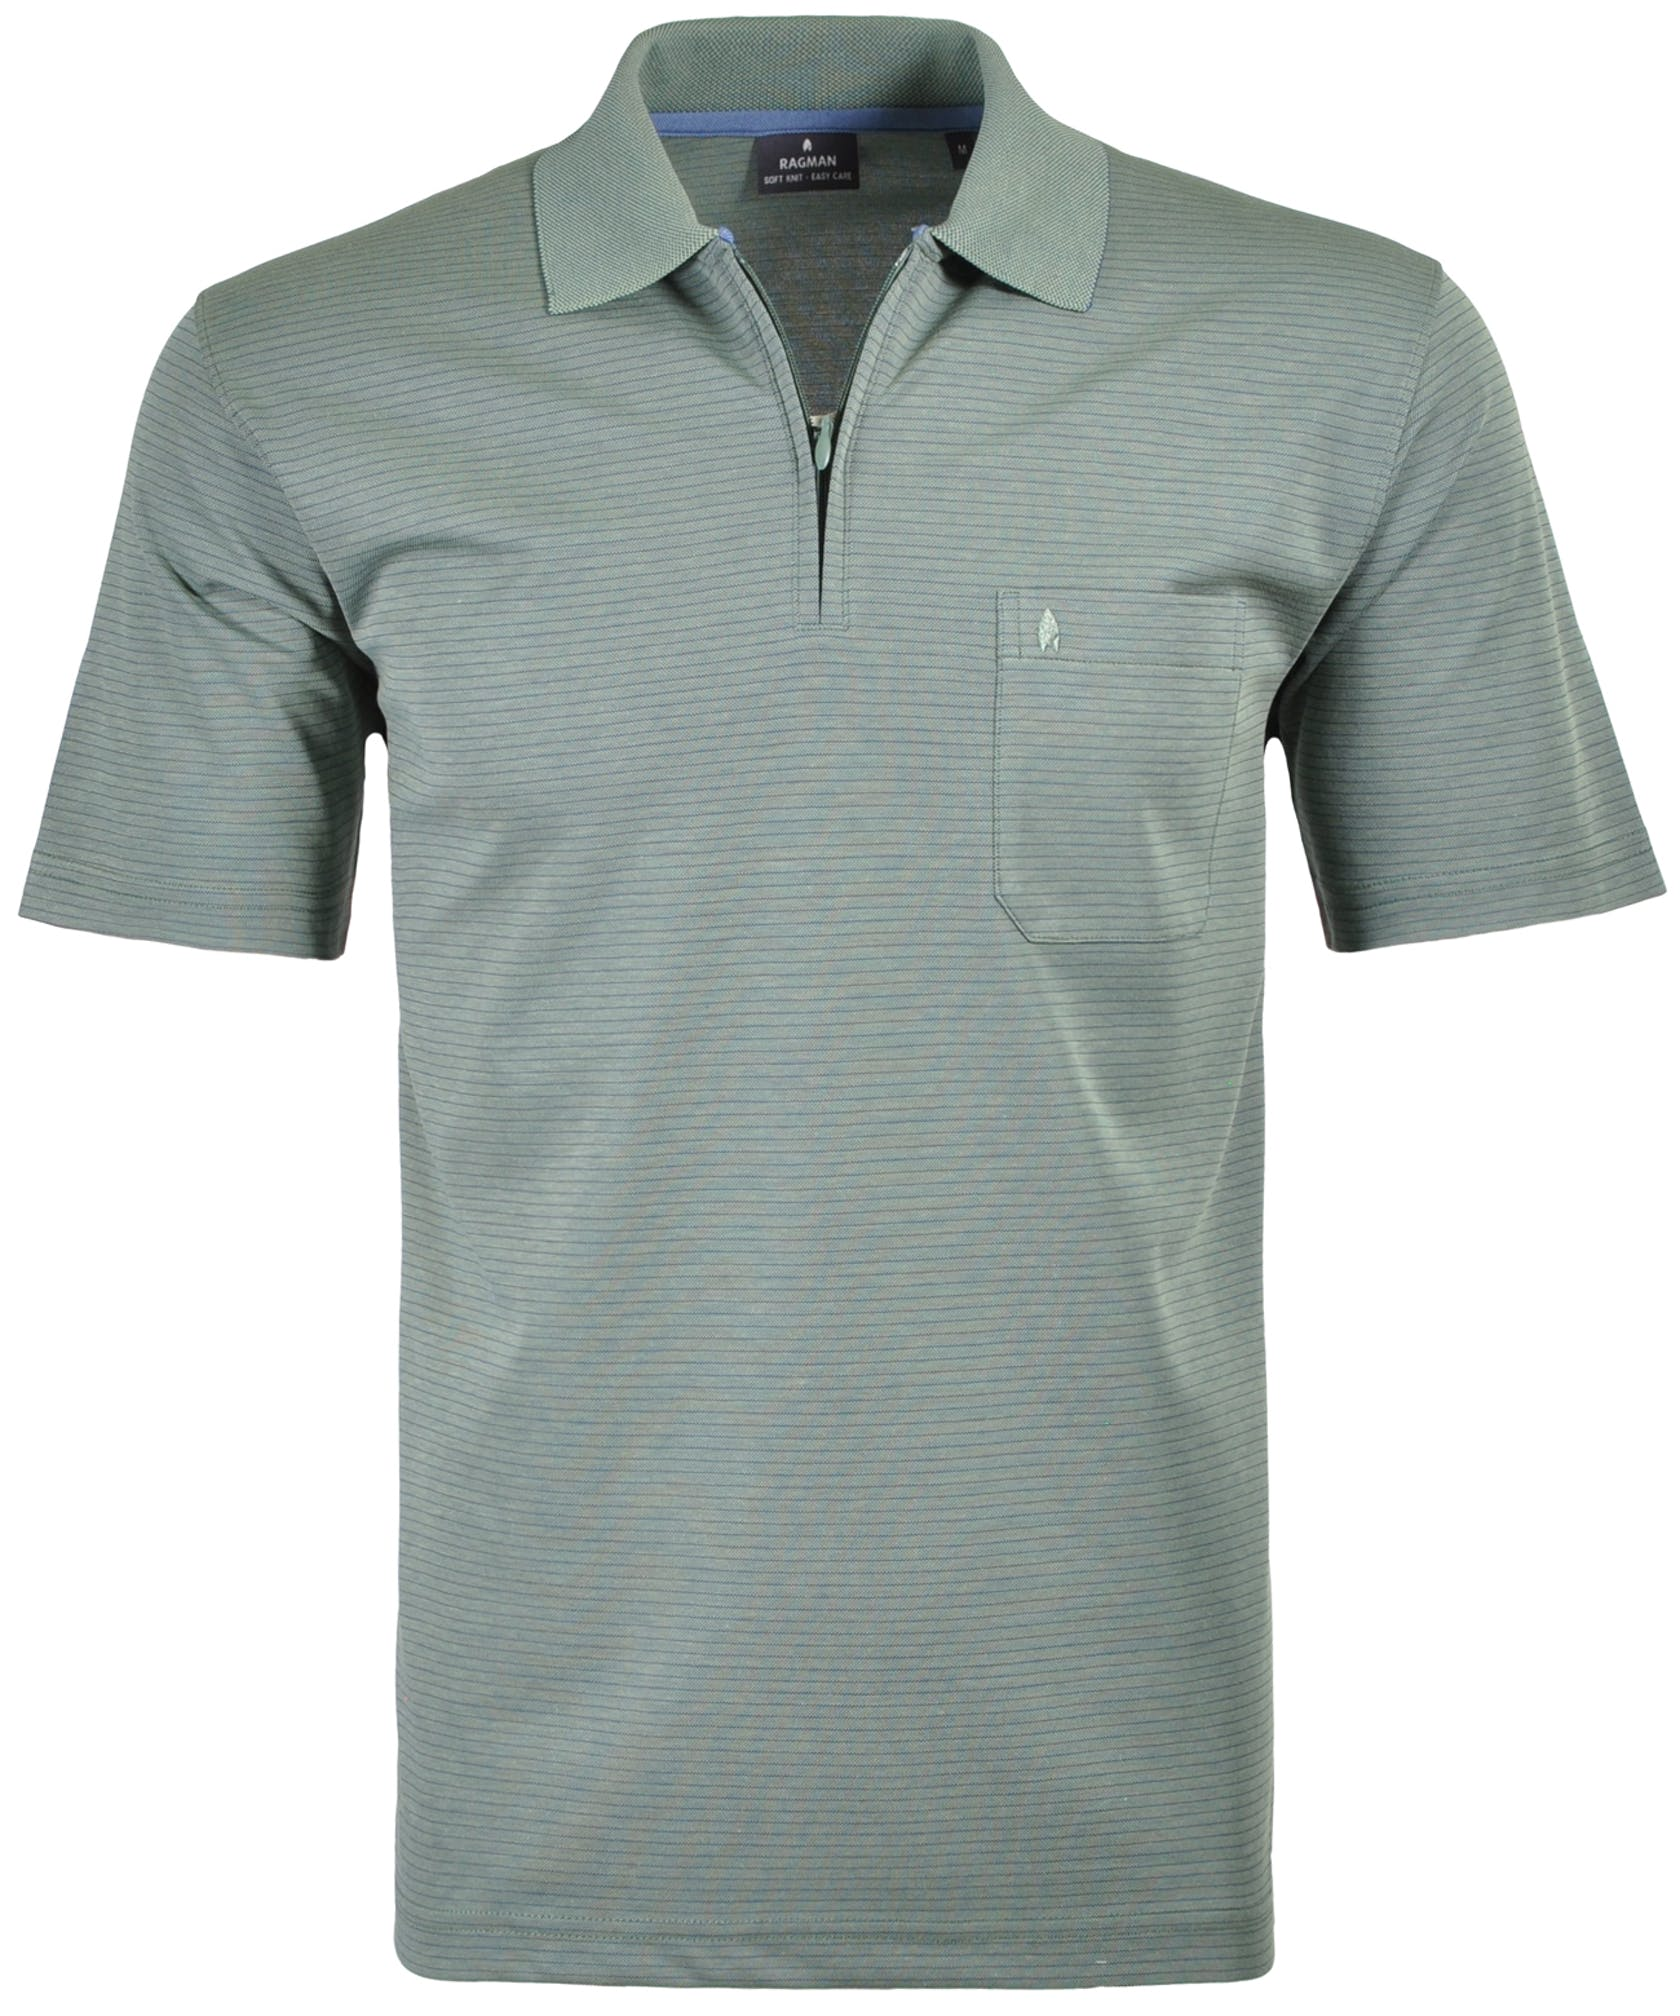 RAGMAN Softknit-Polo mit Zip, fein gestreift